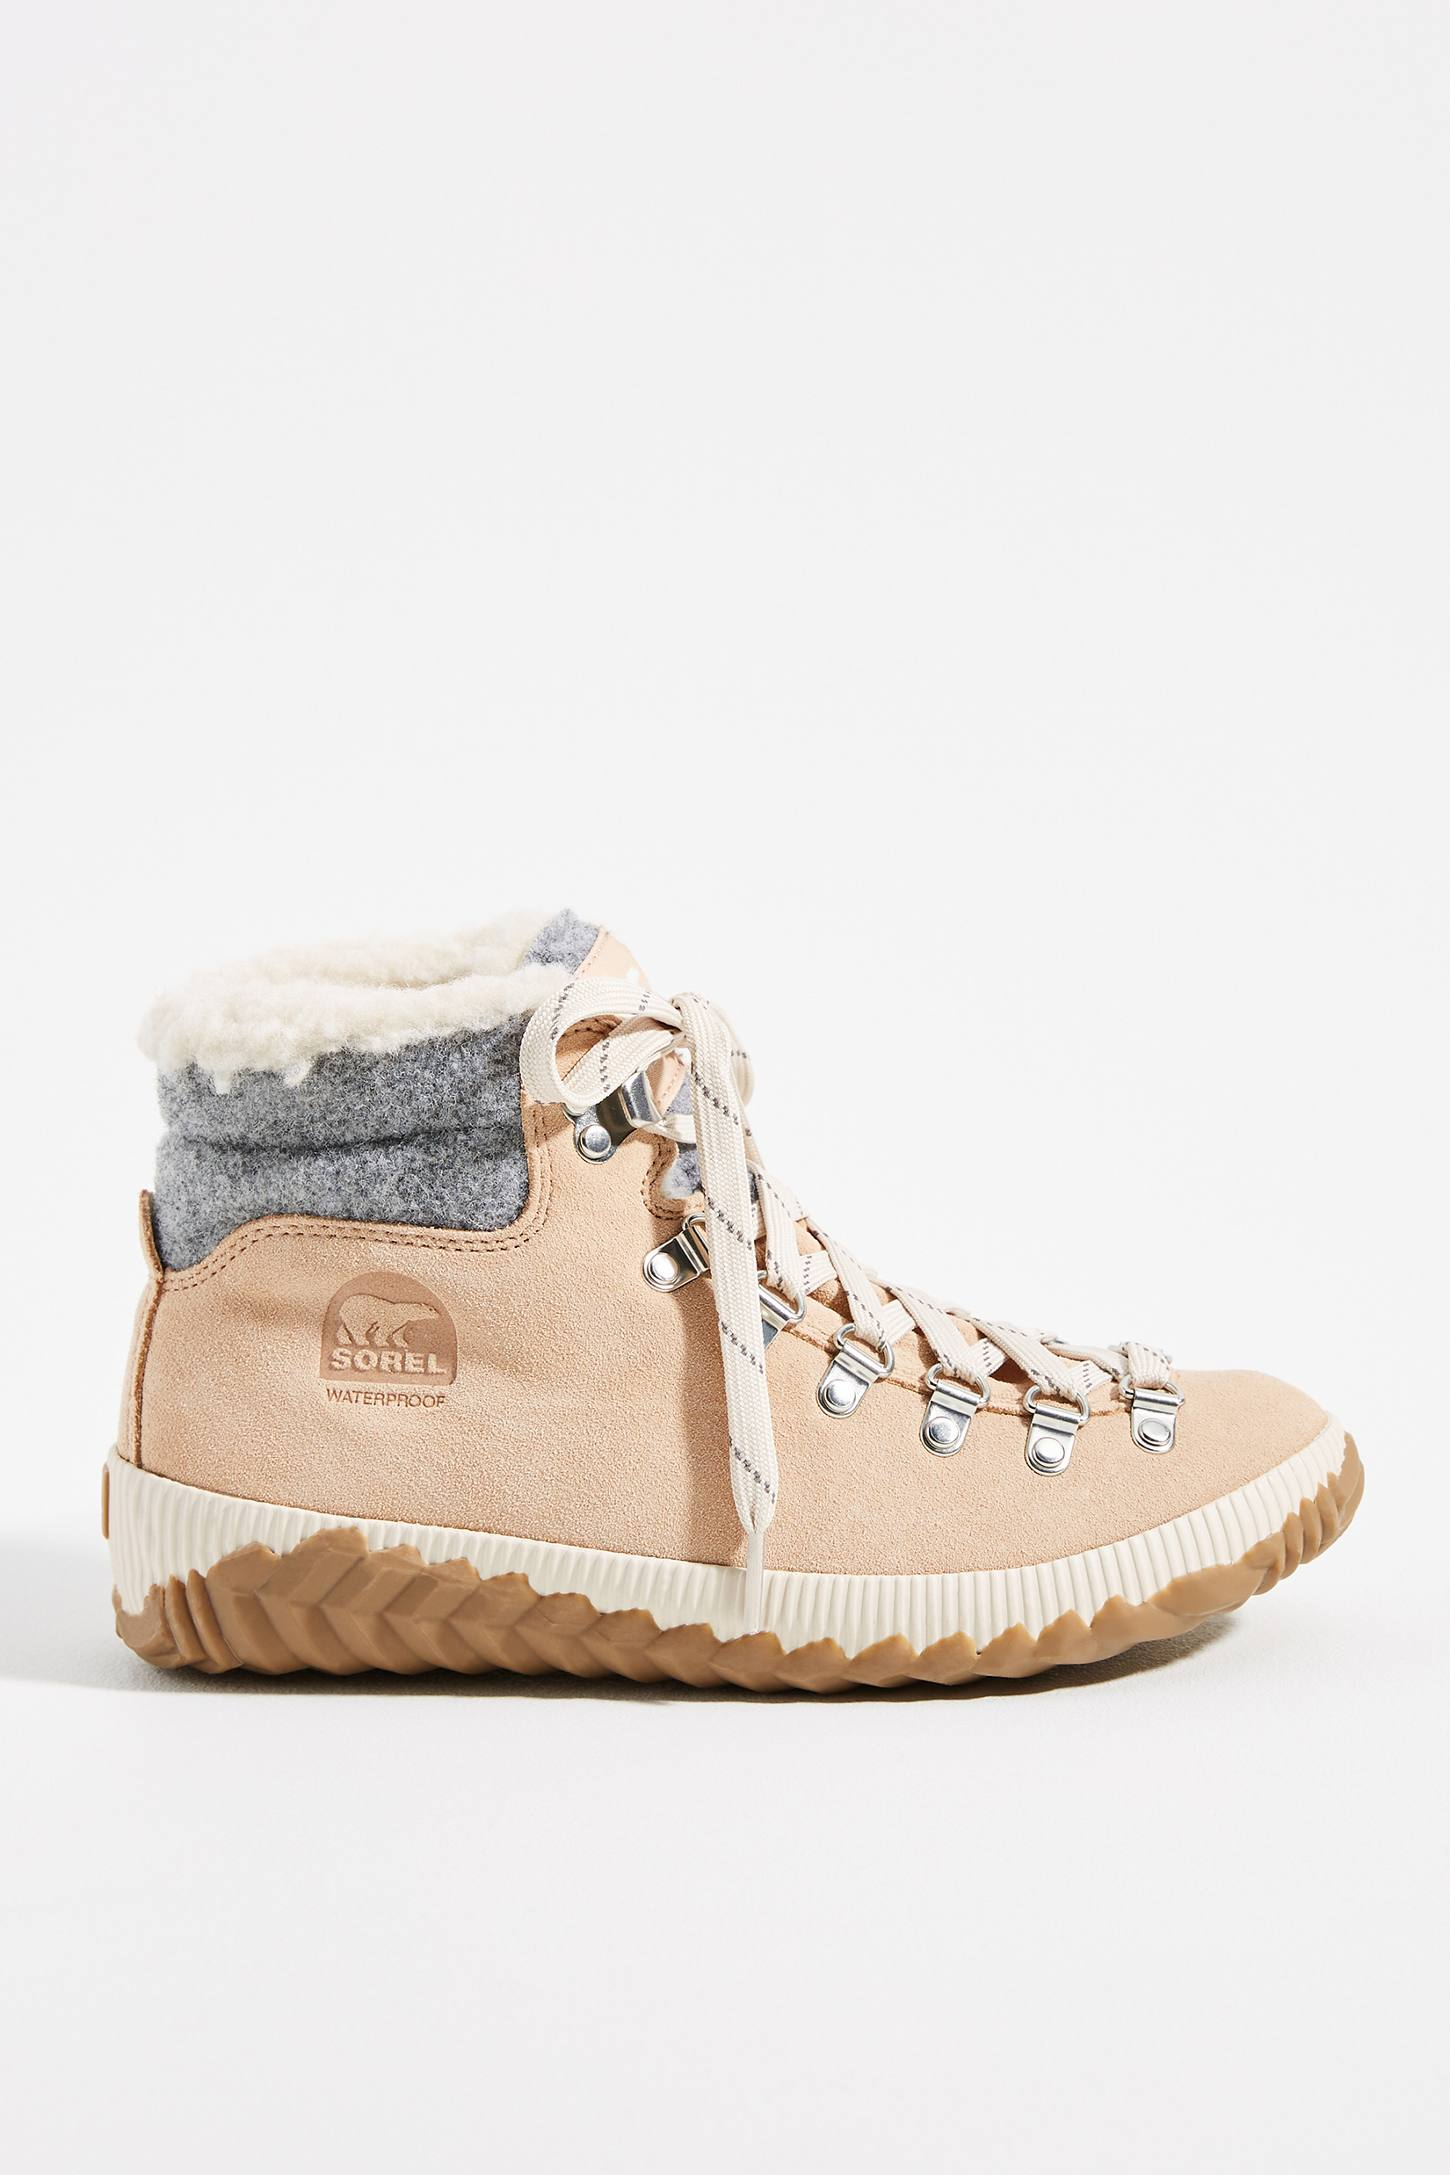 Conquest Weather Boots